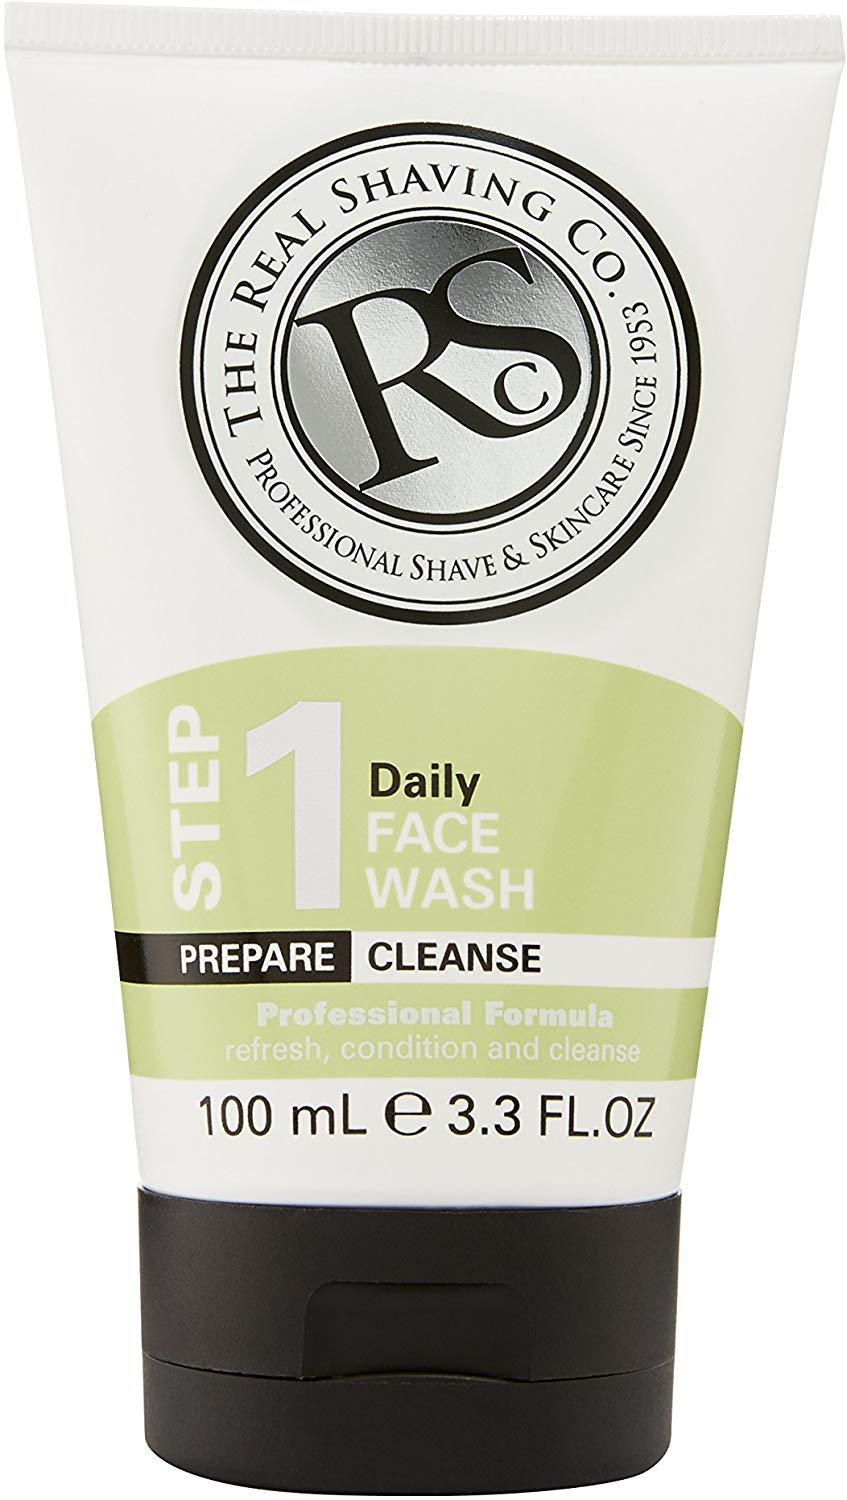 The Real Shaving Company Step 1 Daily Face Wash (Prepare|Cleanse) 100ml / 3.3 fl oz